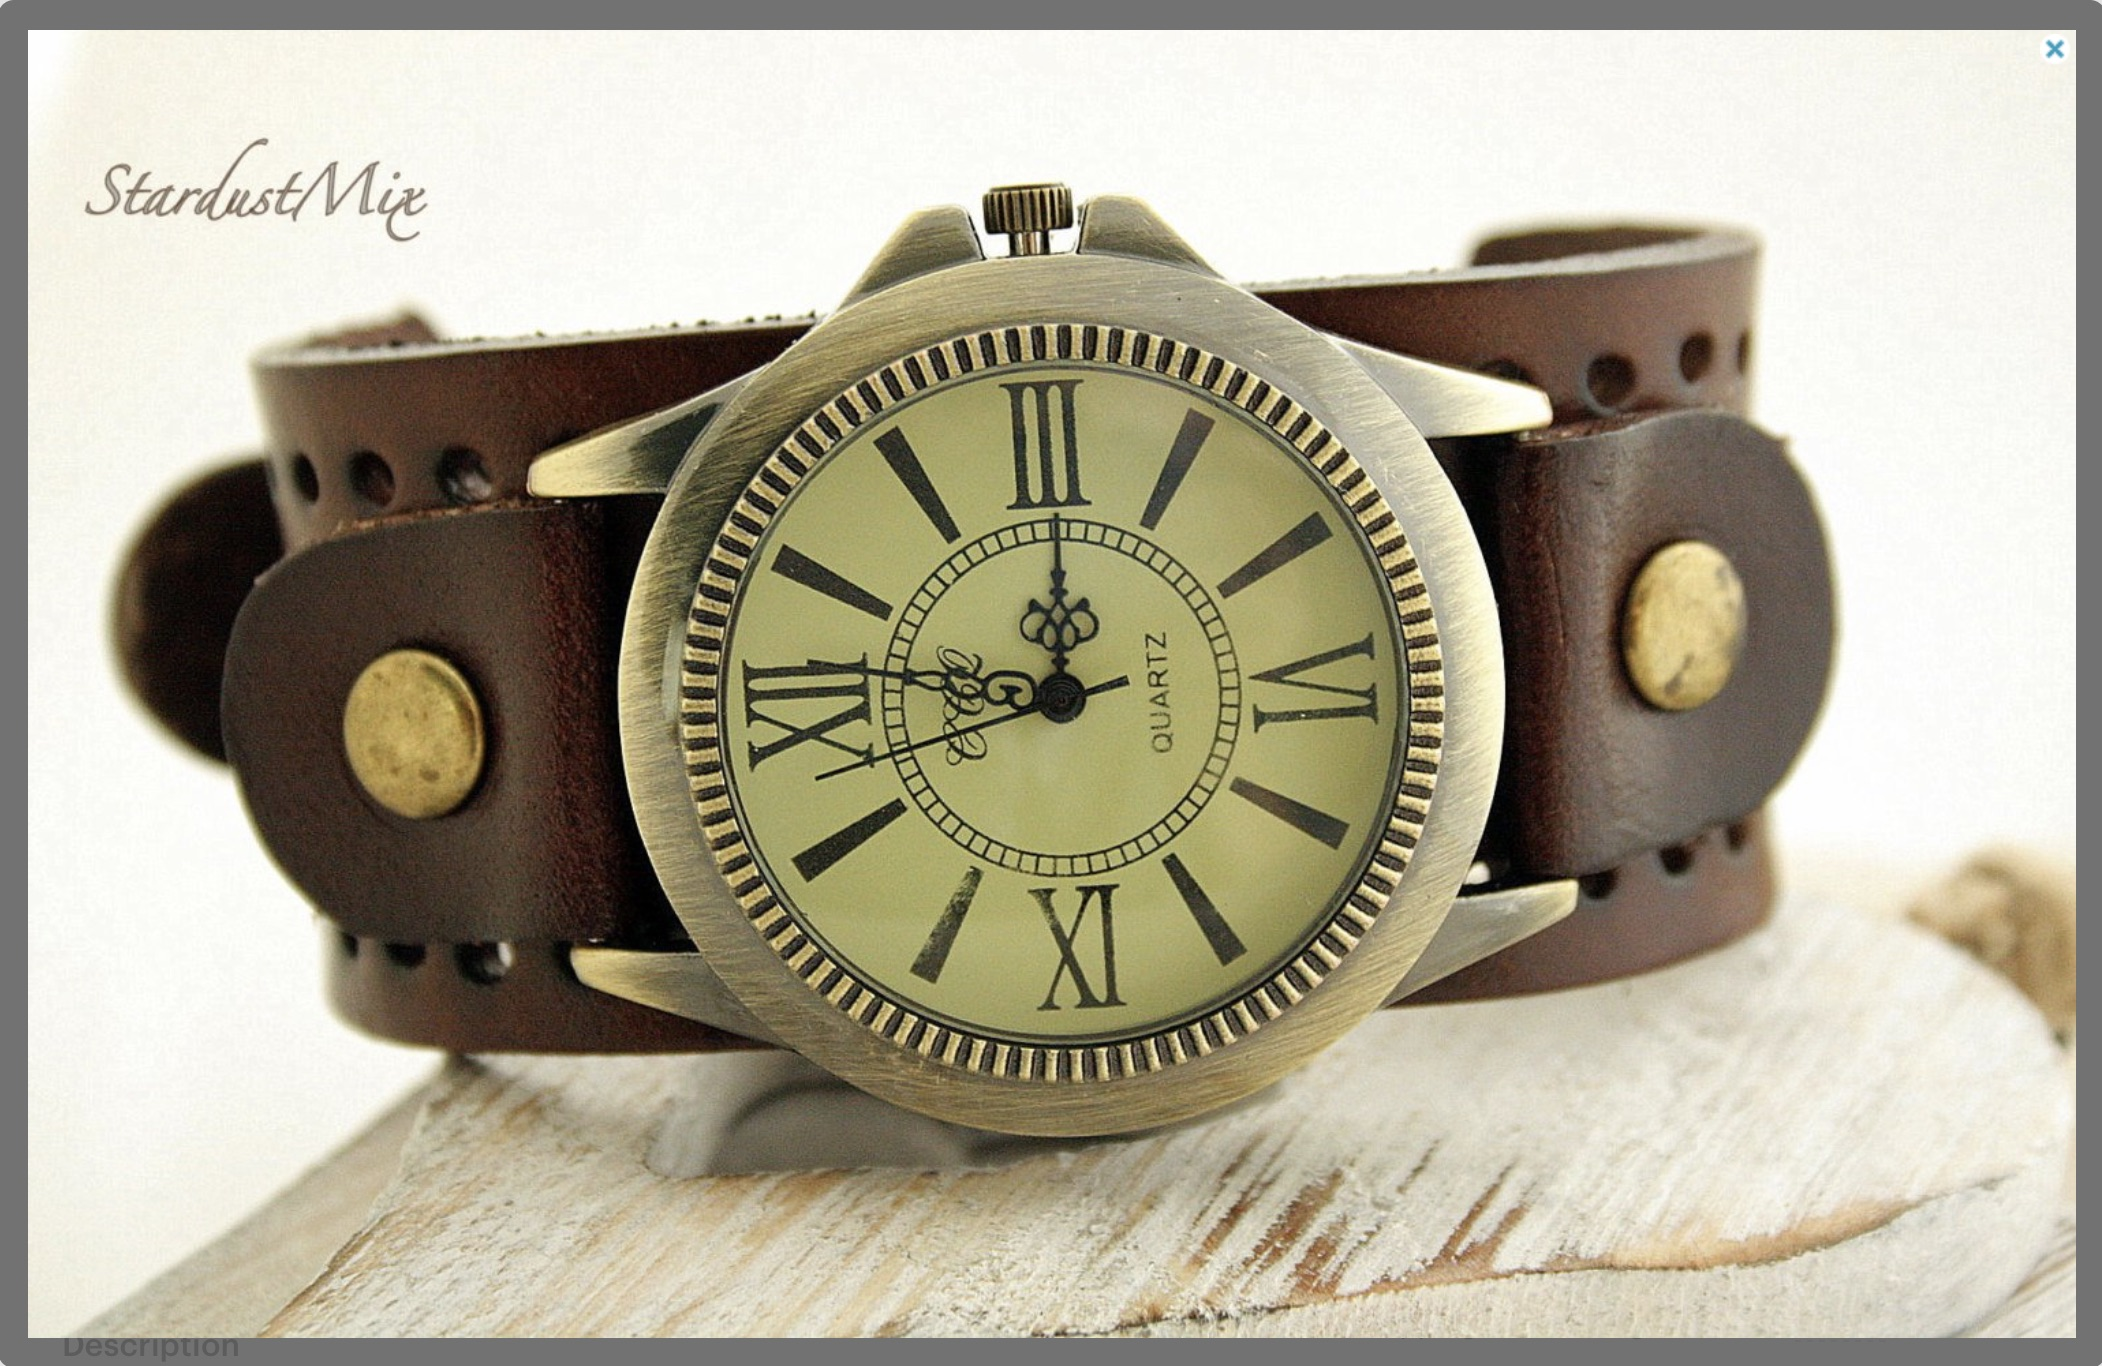 d0fa2213f6a09 Mens watch steampunk vintage leather boho mens watch groomsmen gift  boyfriend gift for men anniversary gift for him mens gift Christmas gift on  Storenvy